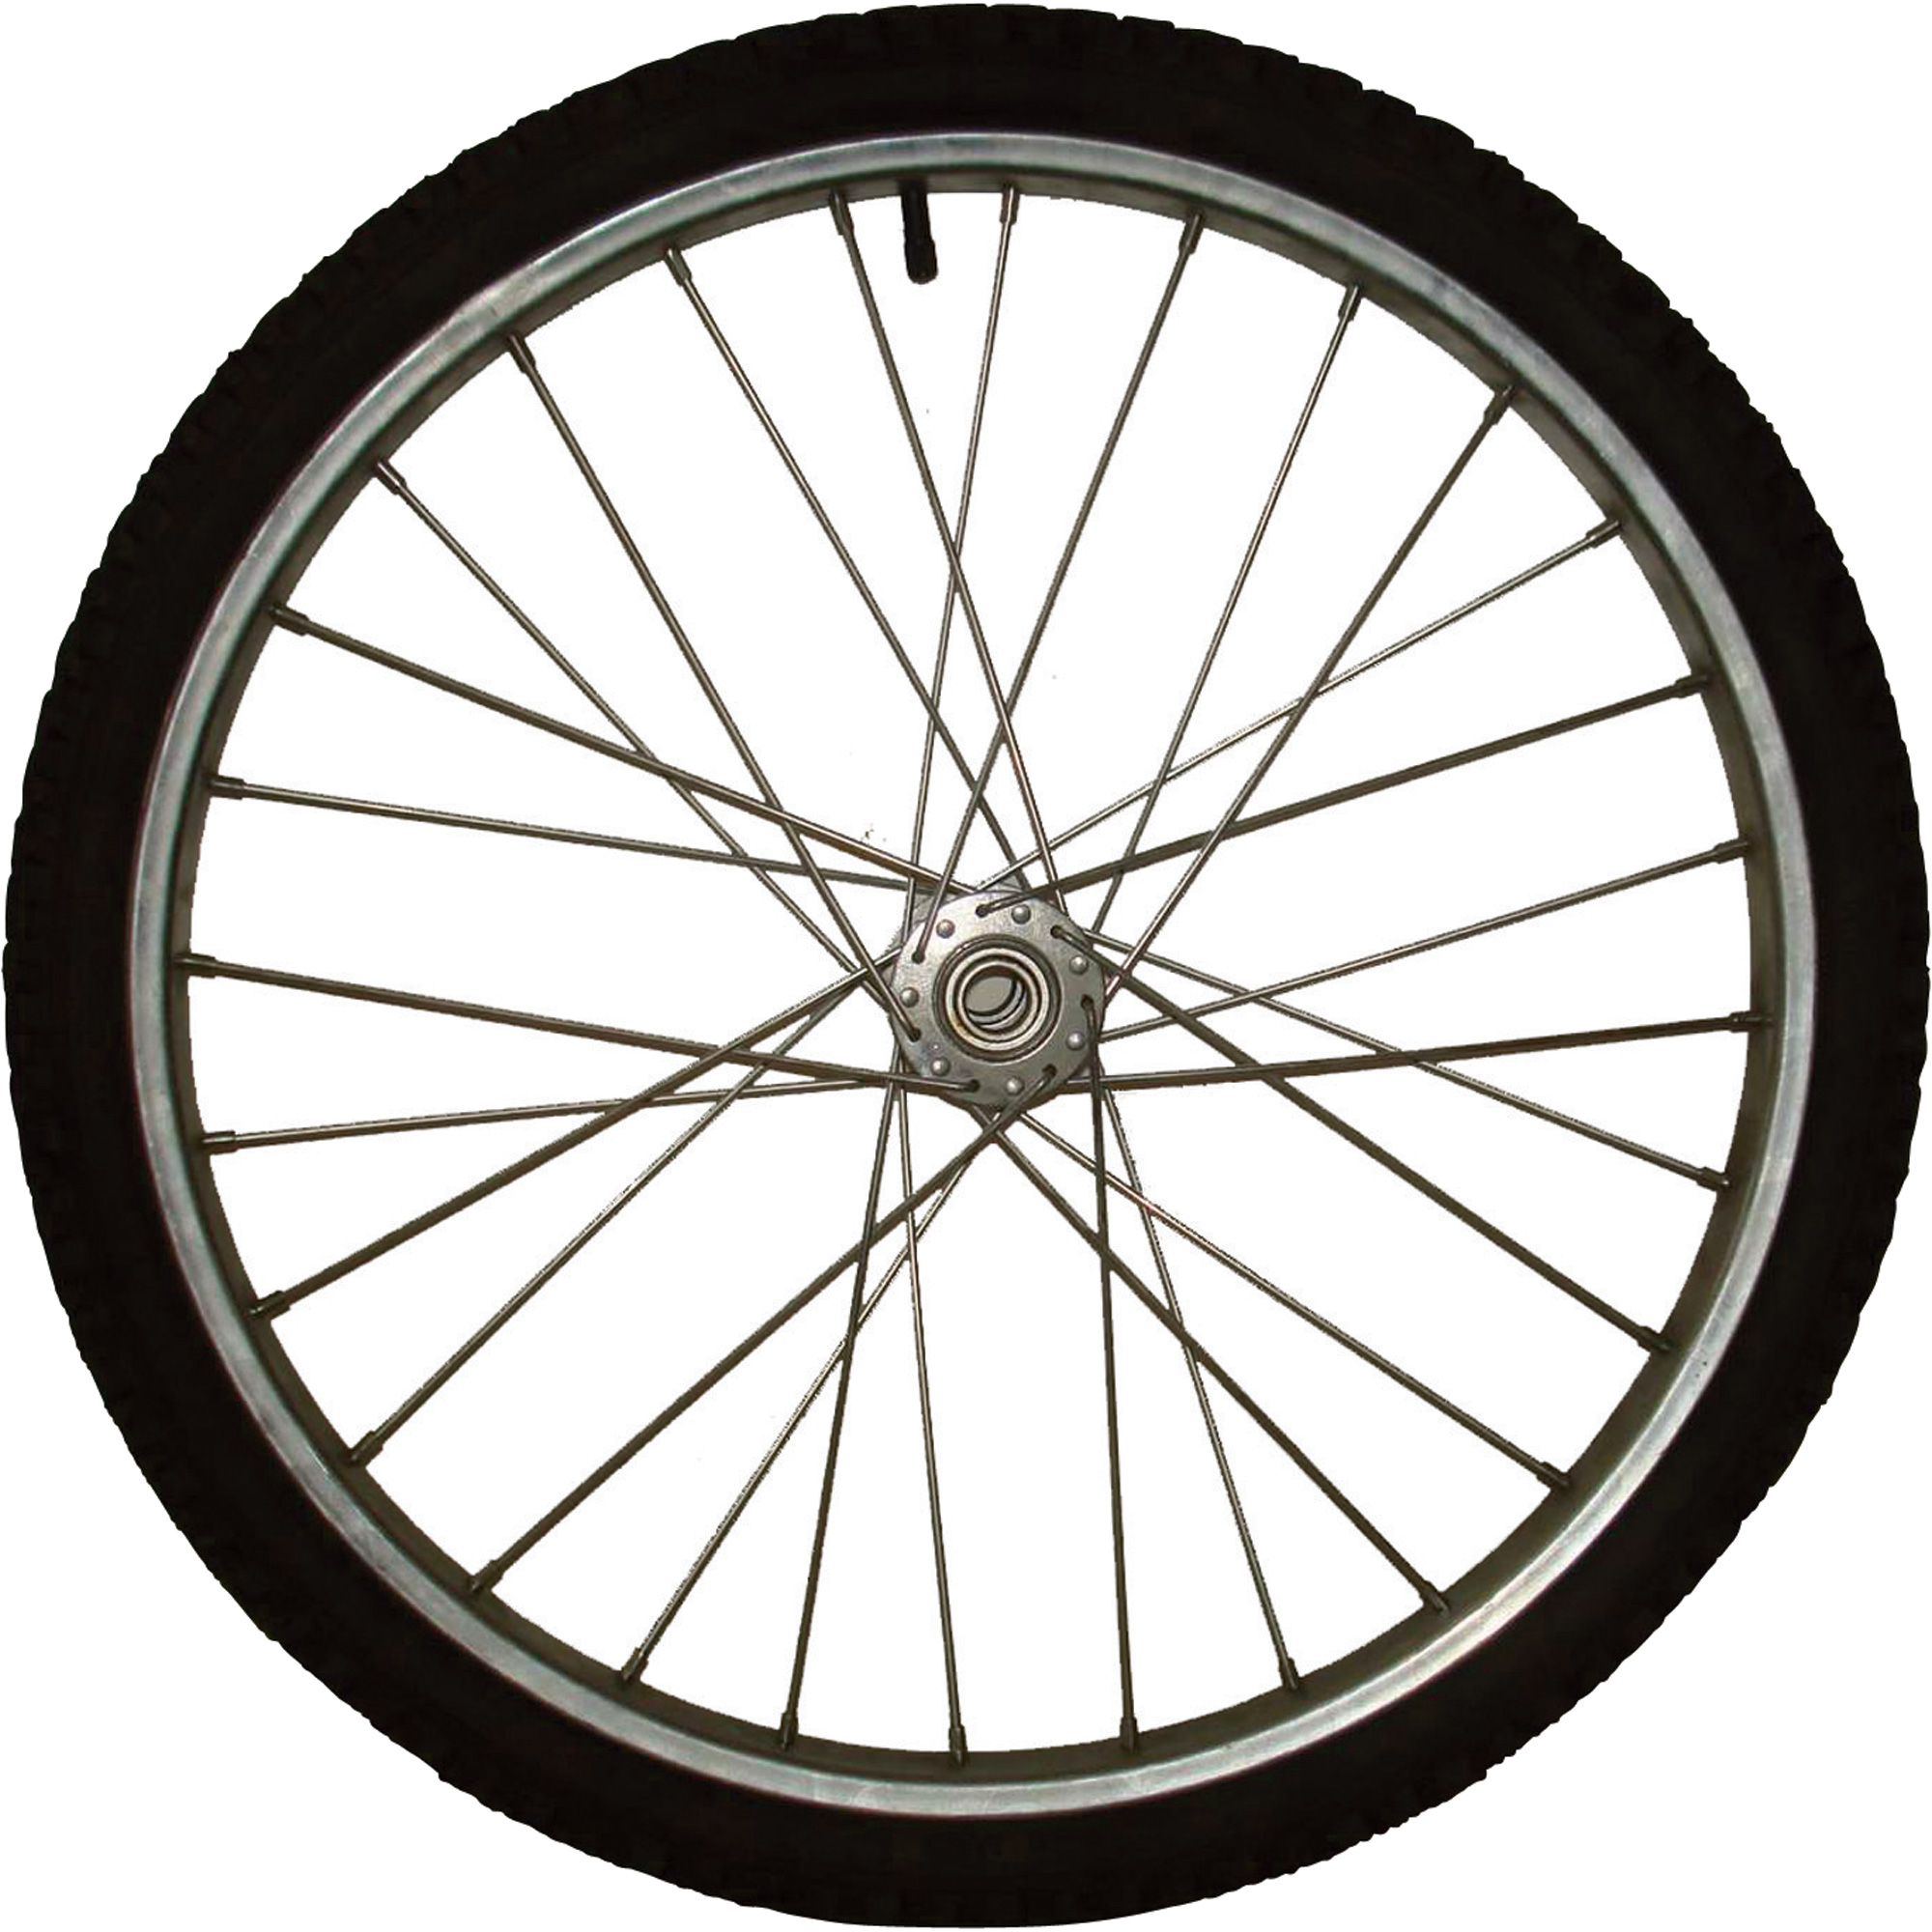 Bike Wheel Clipart.